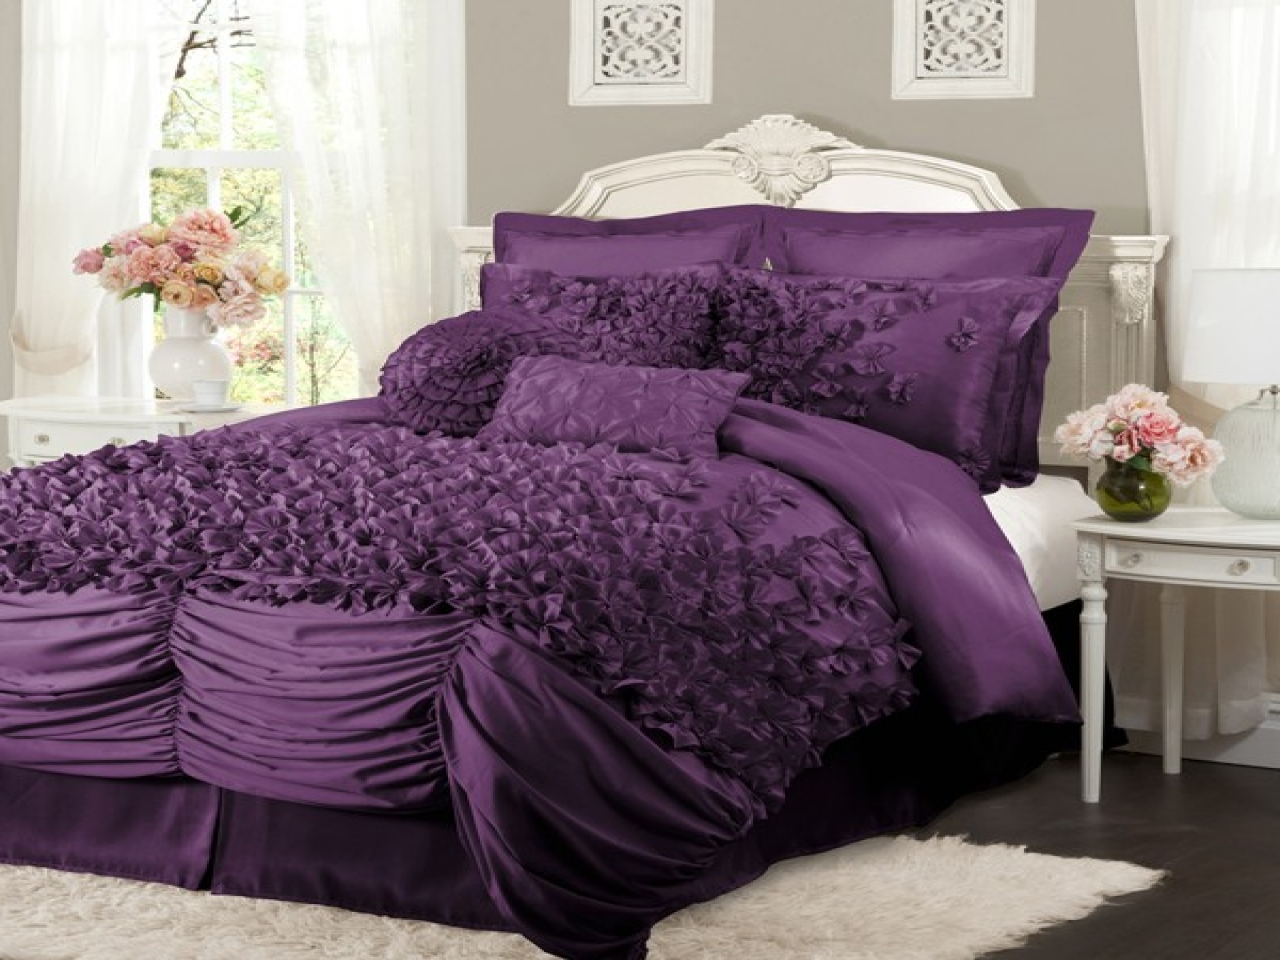 Purple and Pink Comforter Sets | Purple Comforter Sets | Purple Queen Comforter Set